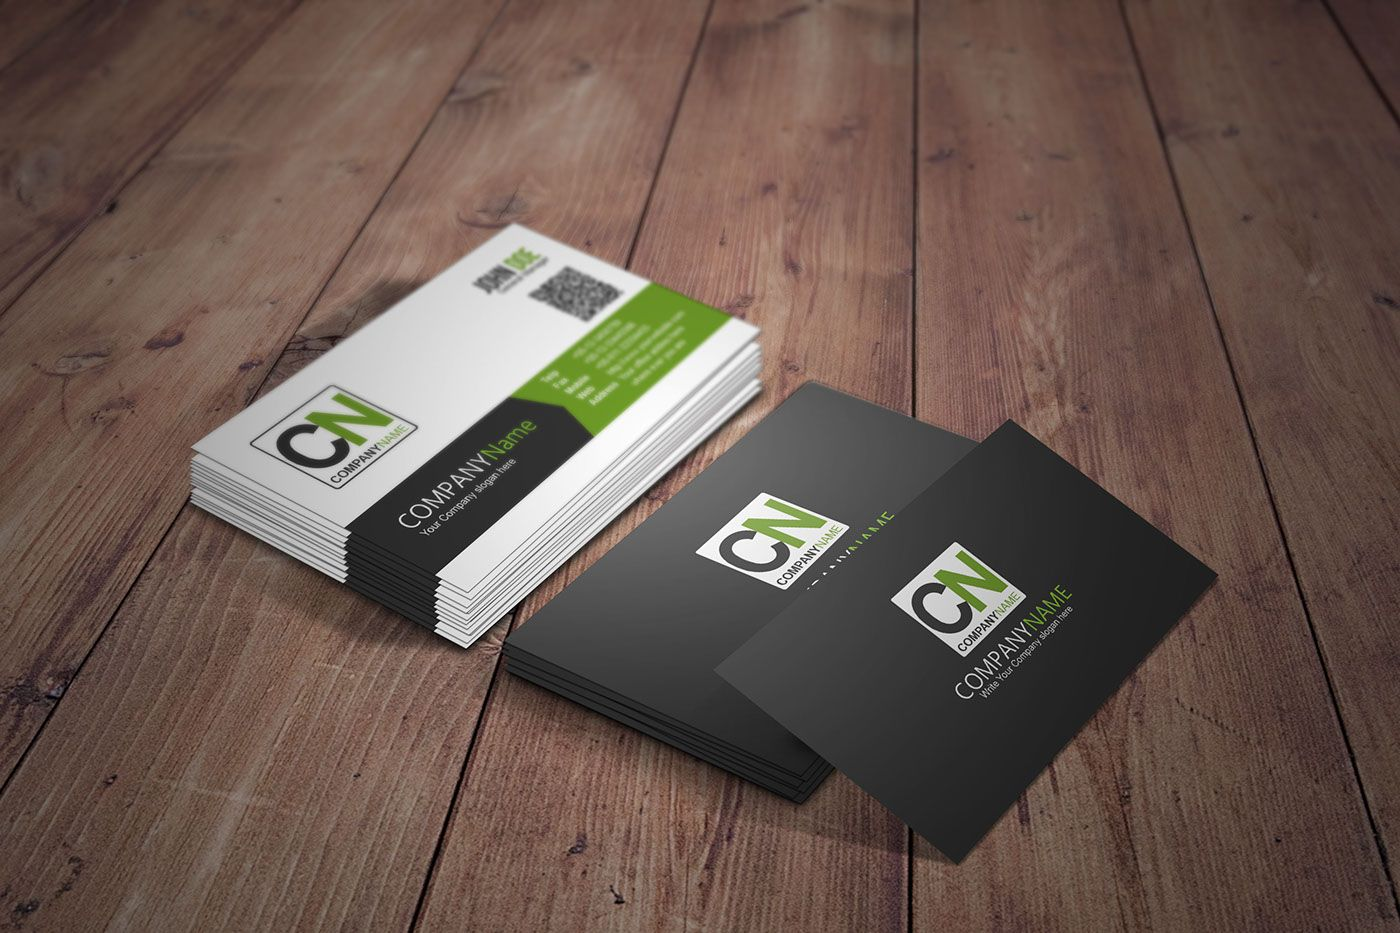 Visual reality business card mock up mockups pinterest when you design a business card you need to take advantage of these business card mockup psd designs in order to present your work colourmoves